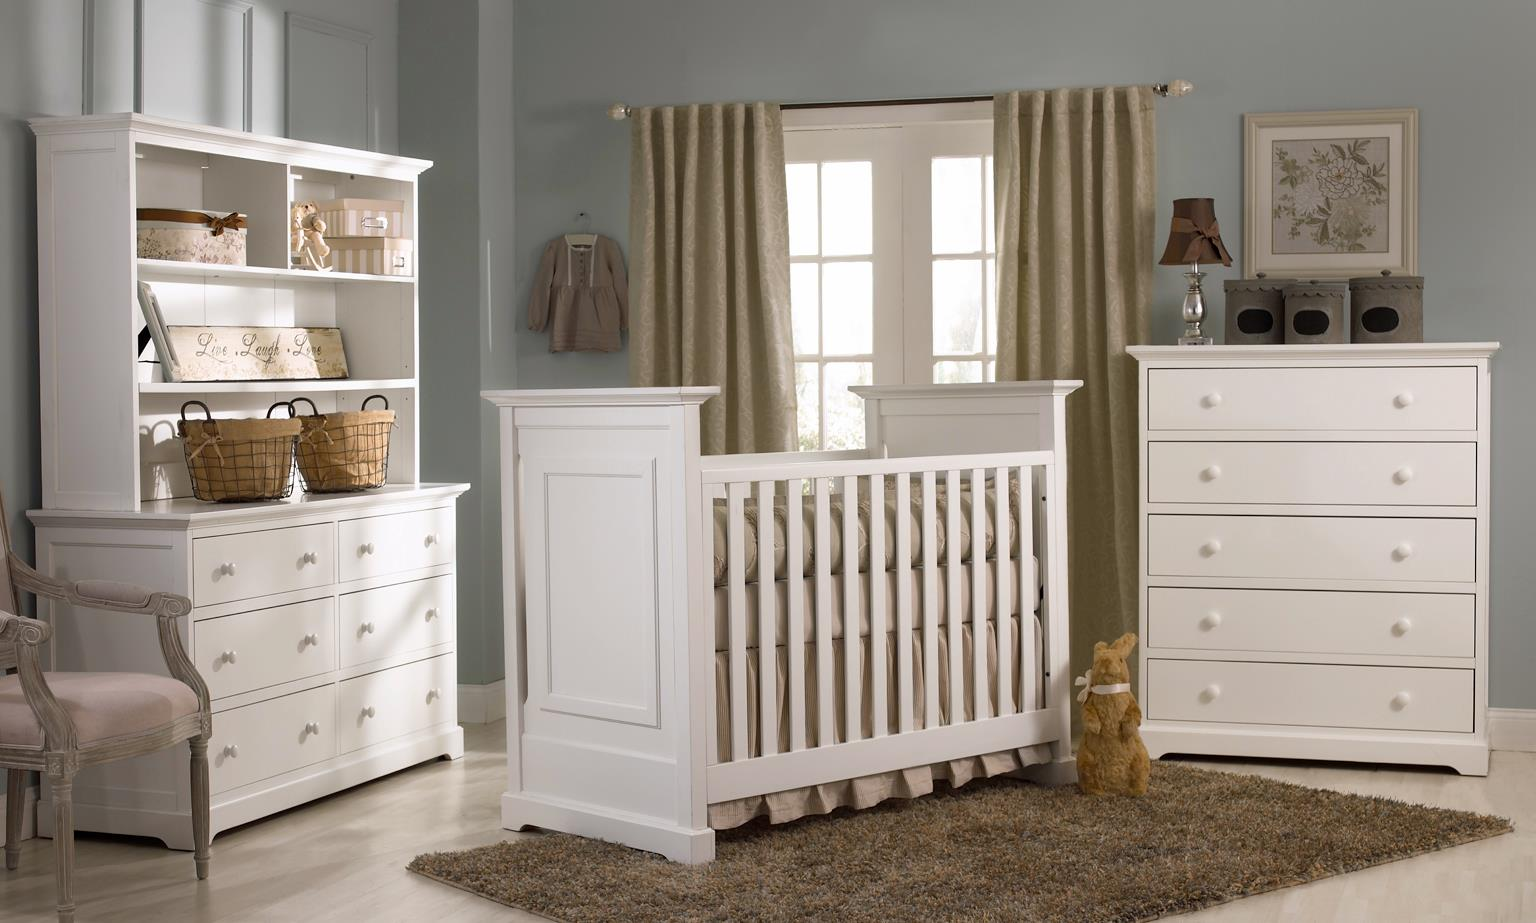 white munire crib on cream ceramics floor with tan carpet matched with blue  wall with white. Decorating  Lovely Crib By Munire Crib For Nursery Furniture Ideas